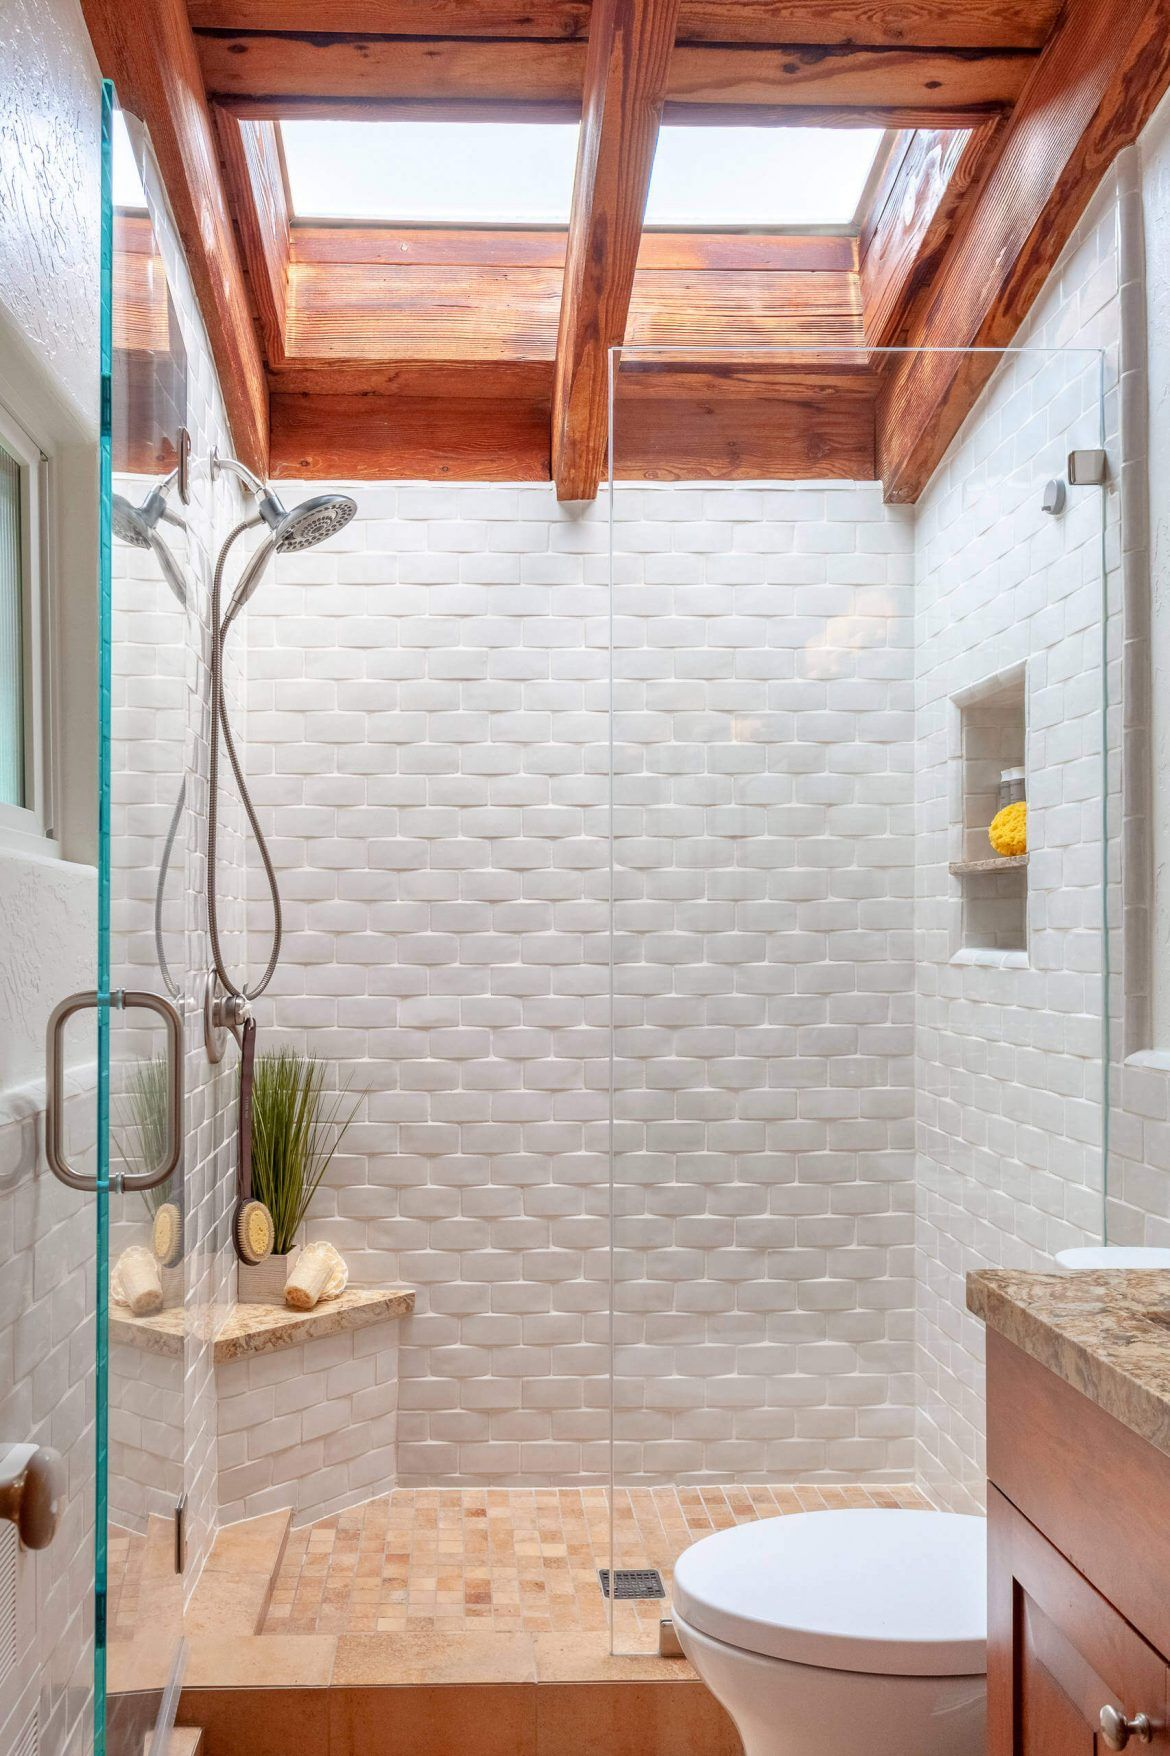 44 Modern Shower Tile Ideas And Designs 2020 Edition Brick Bathroom Modern Shower Tile Shower Tile